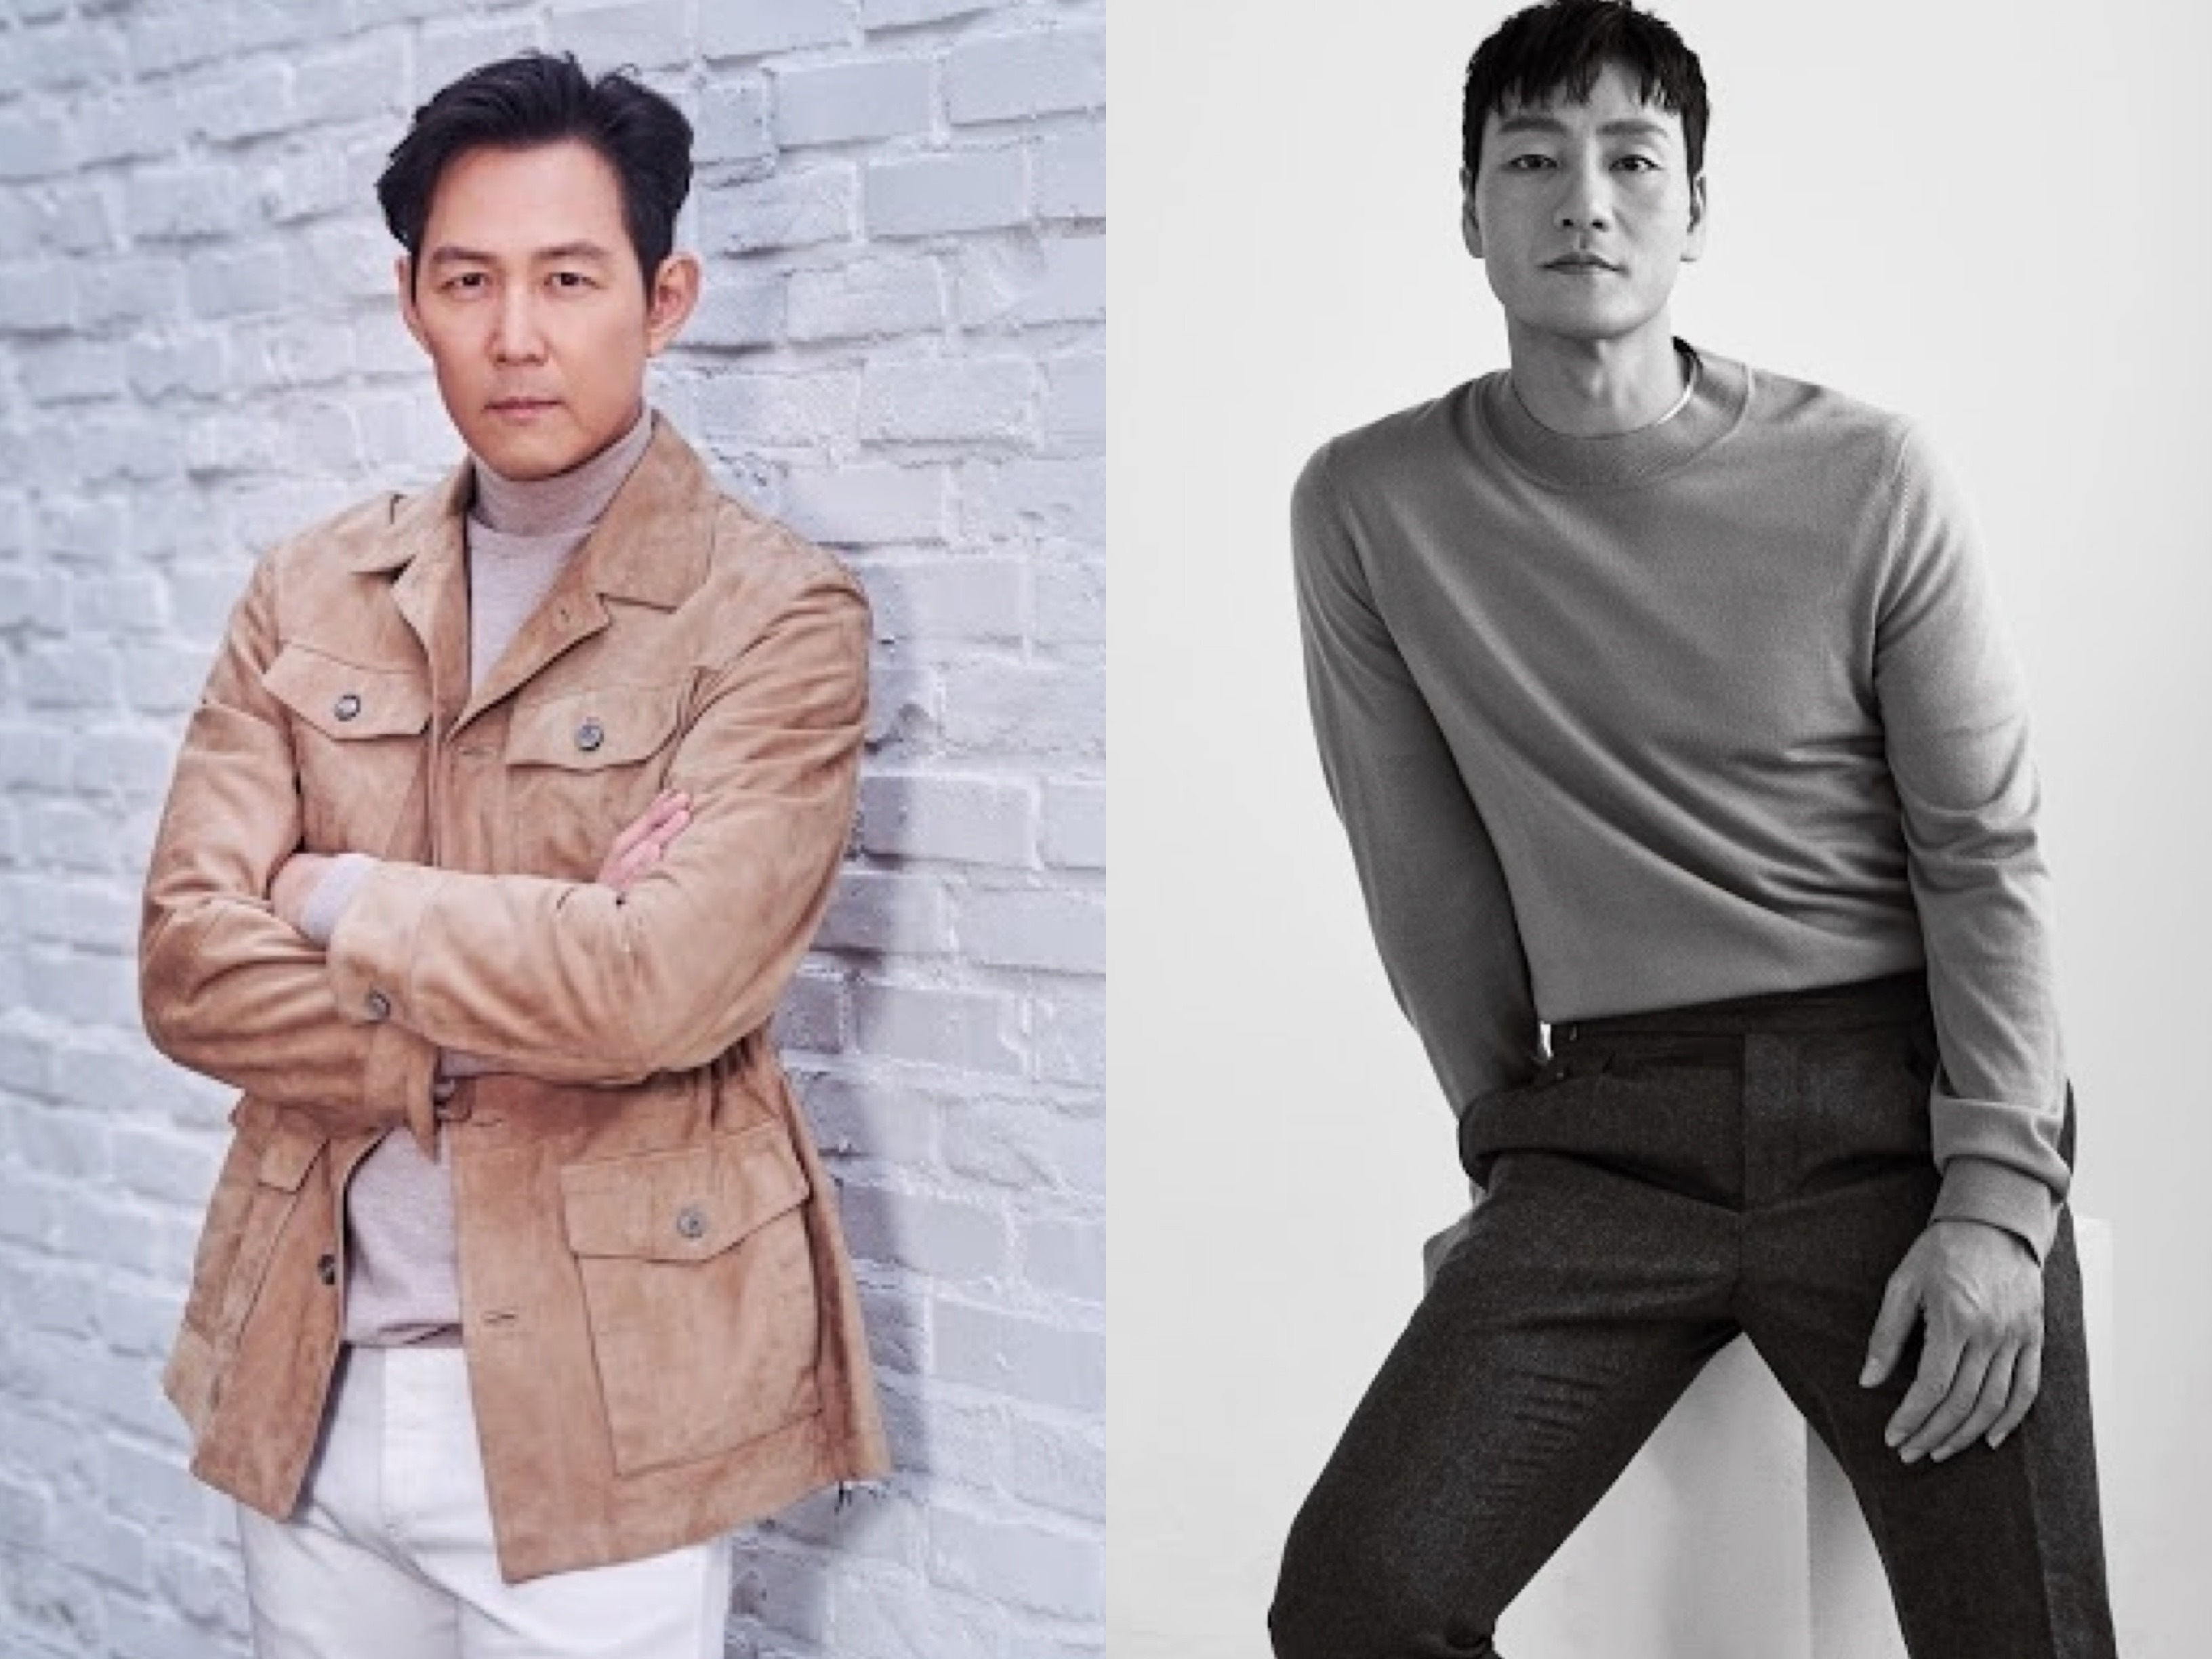 Netflix Confirms Casting of Lee Jung-jae and Park Hae-soo for New Original Series Round Six - Image 1